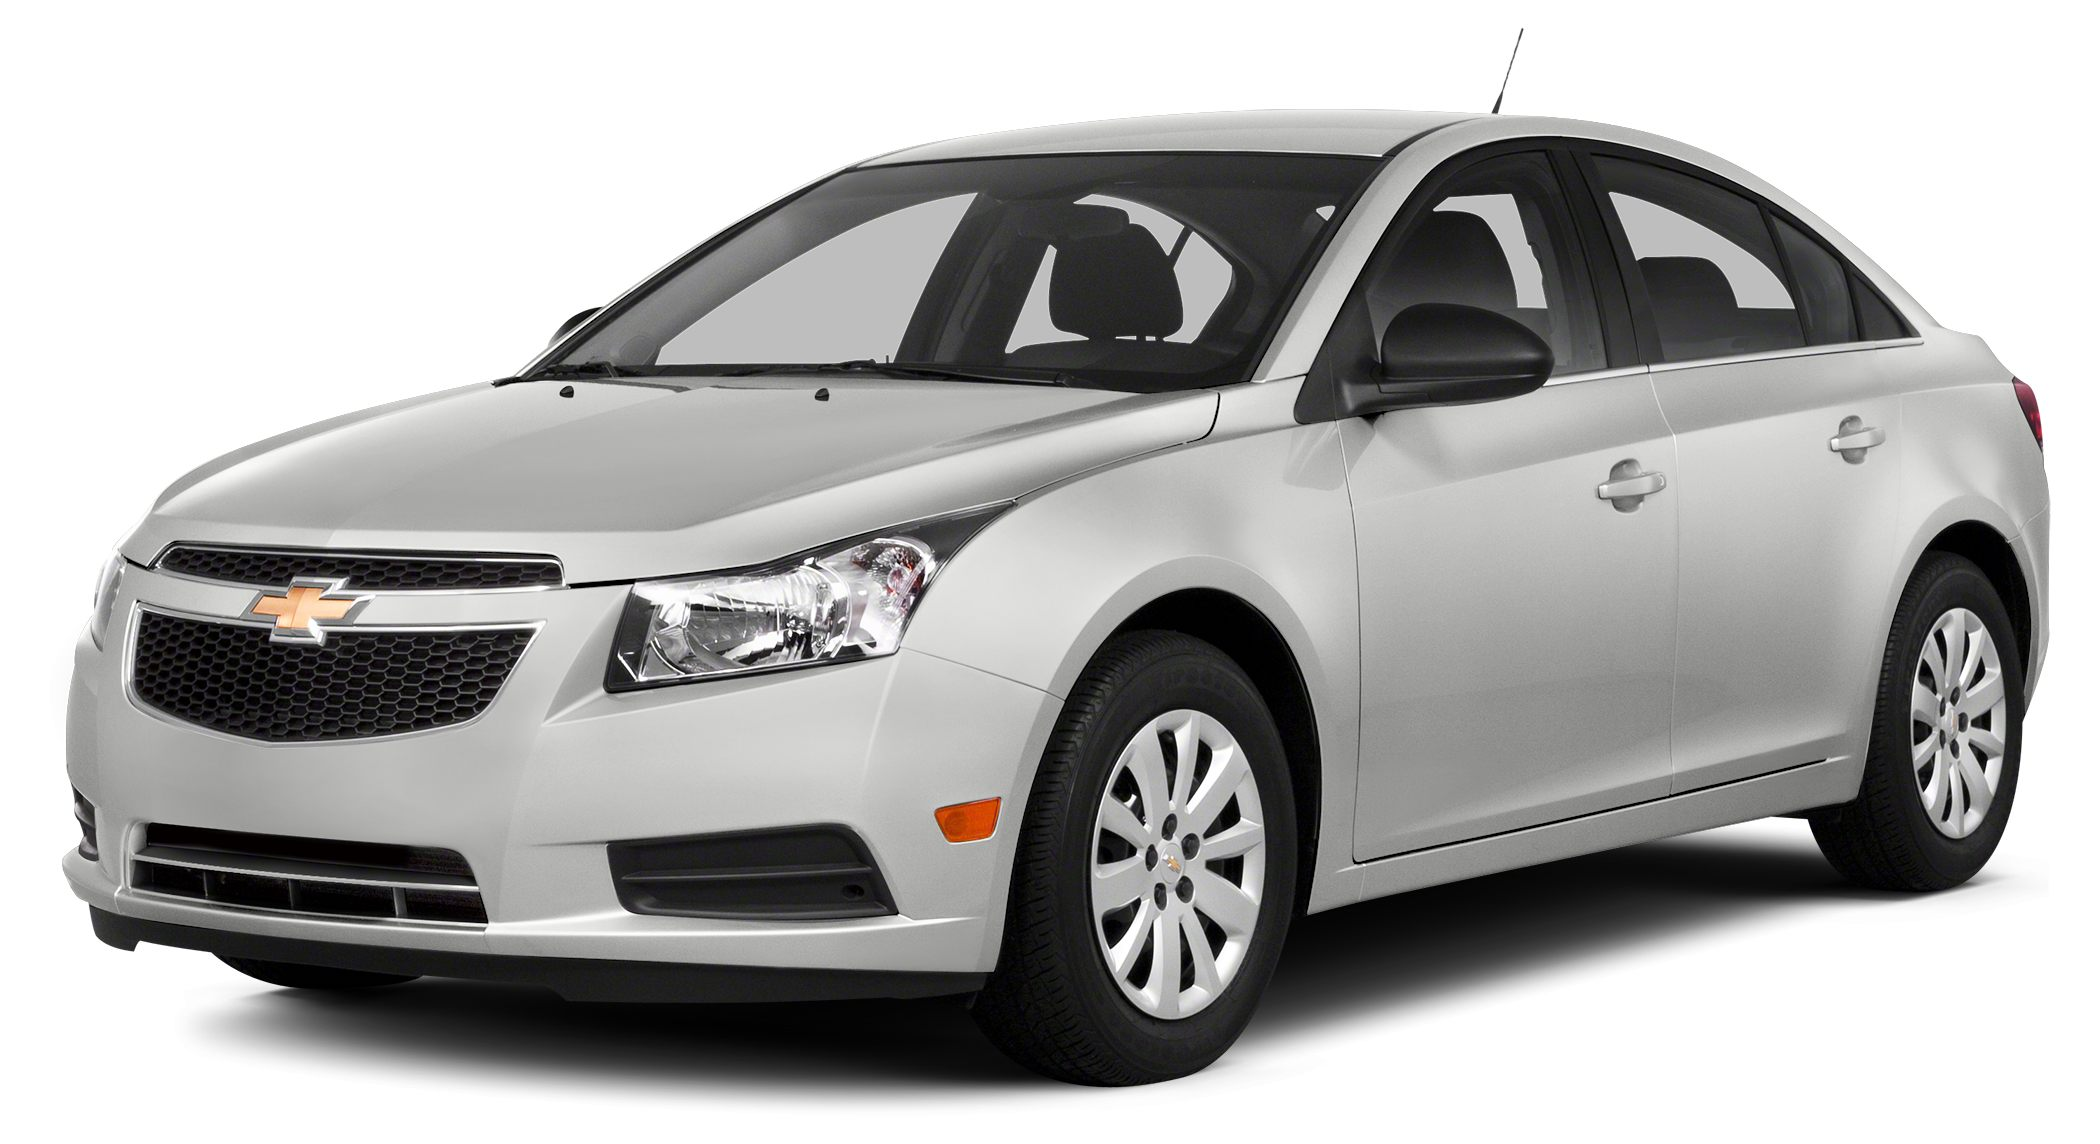 2014 Chevrolet Cruze 1LT Proudly serving manatee county for over 60 years offering Cars Trucks S